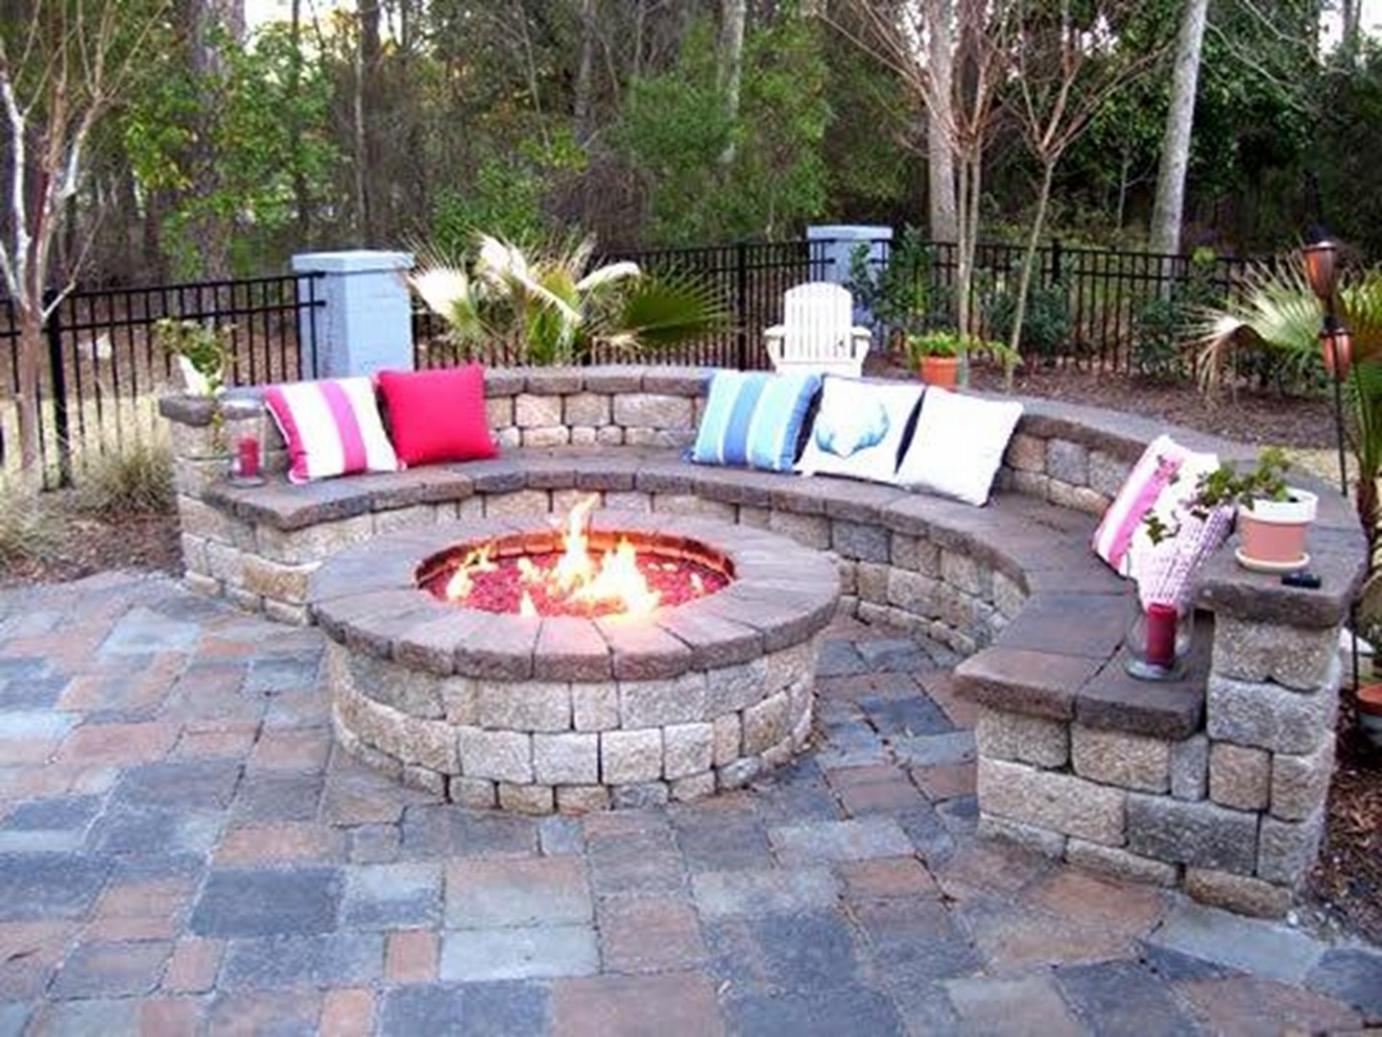 backyard patio design plans - Backyard Patio Design Plans